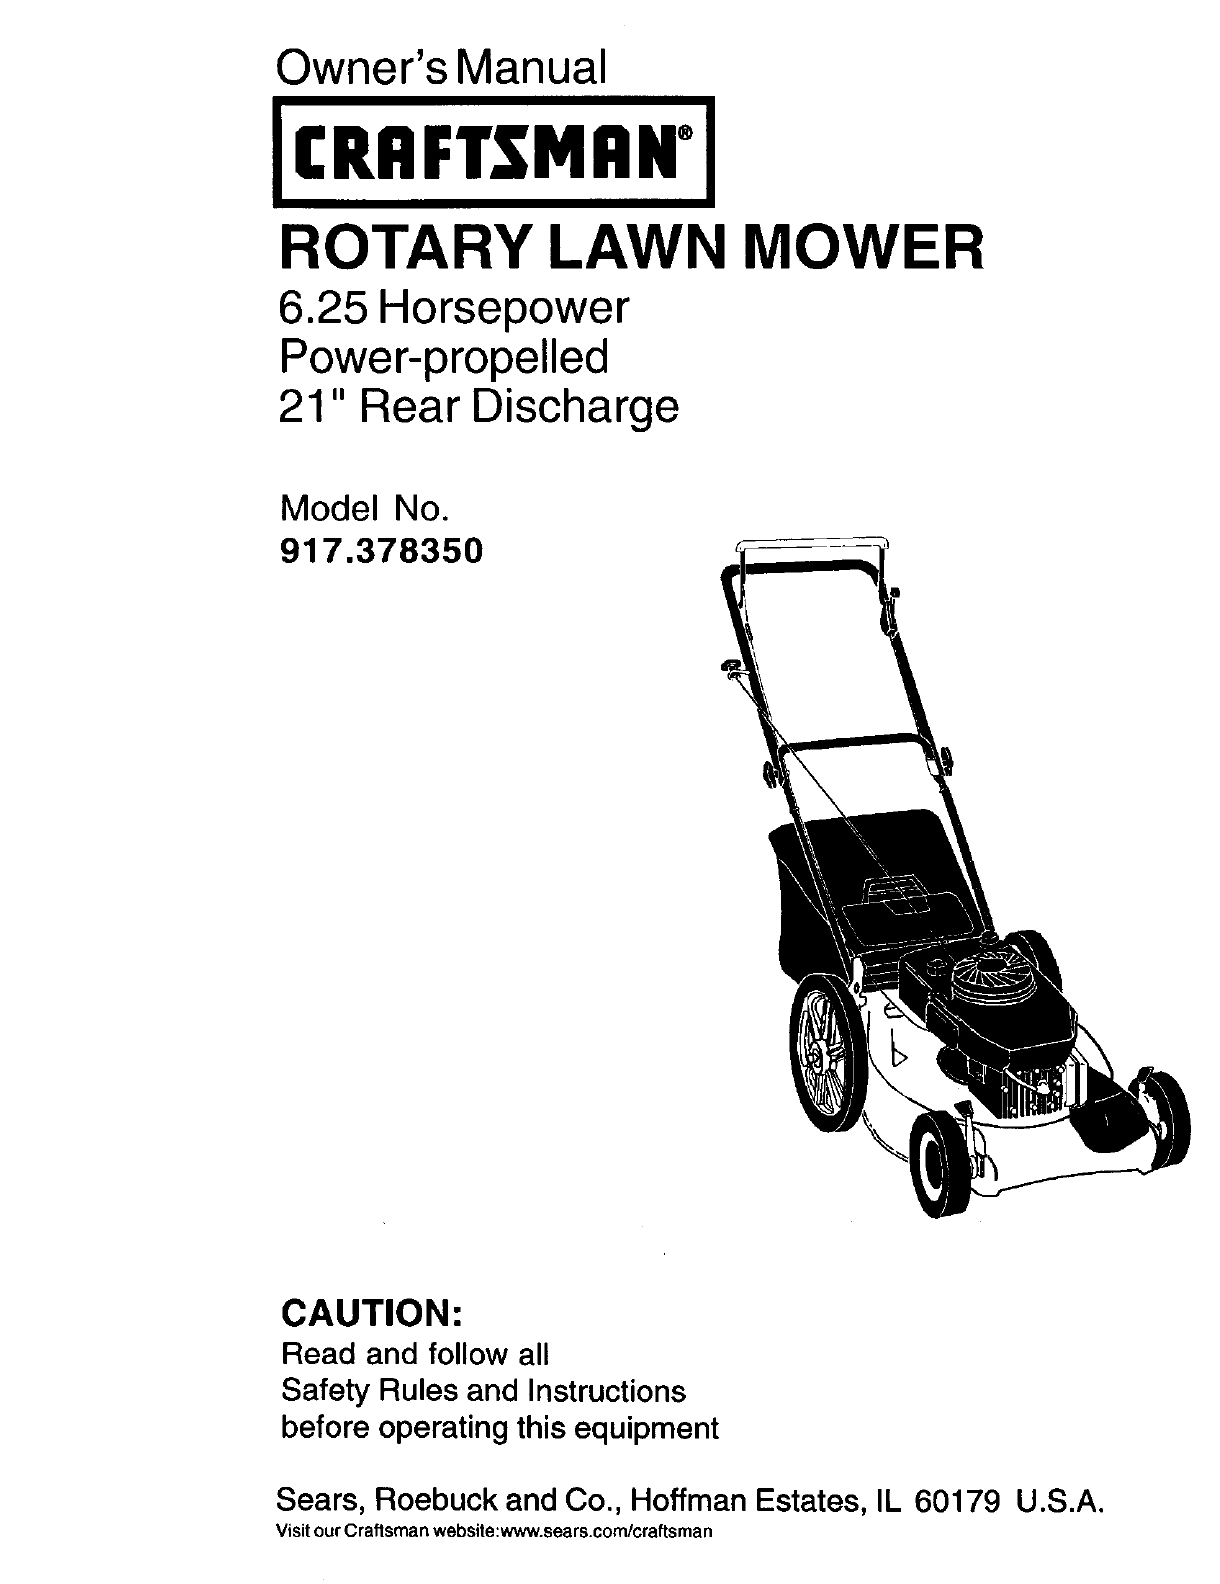 Best Craftsman Lawn Mower Model 247 Manual Image Collection 917 Wiring Diagram 917378350 User Rotary Manuals And Guides Rh Usermanual Wiki Riding